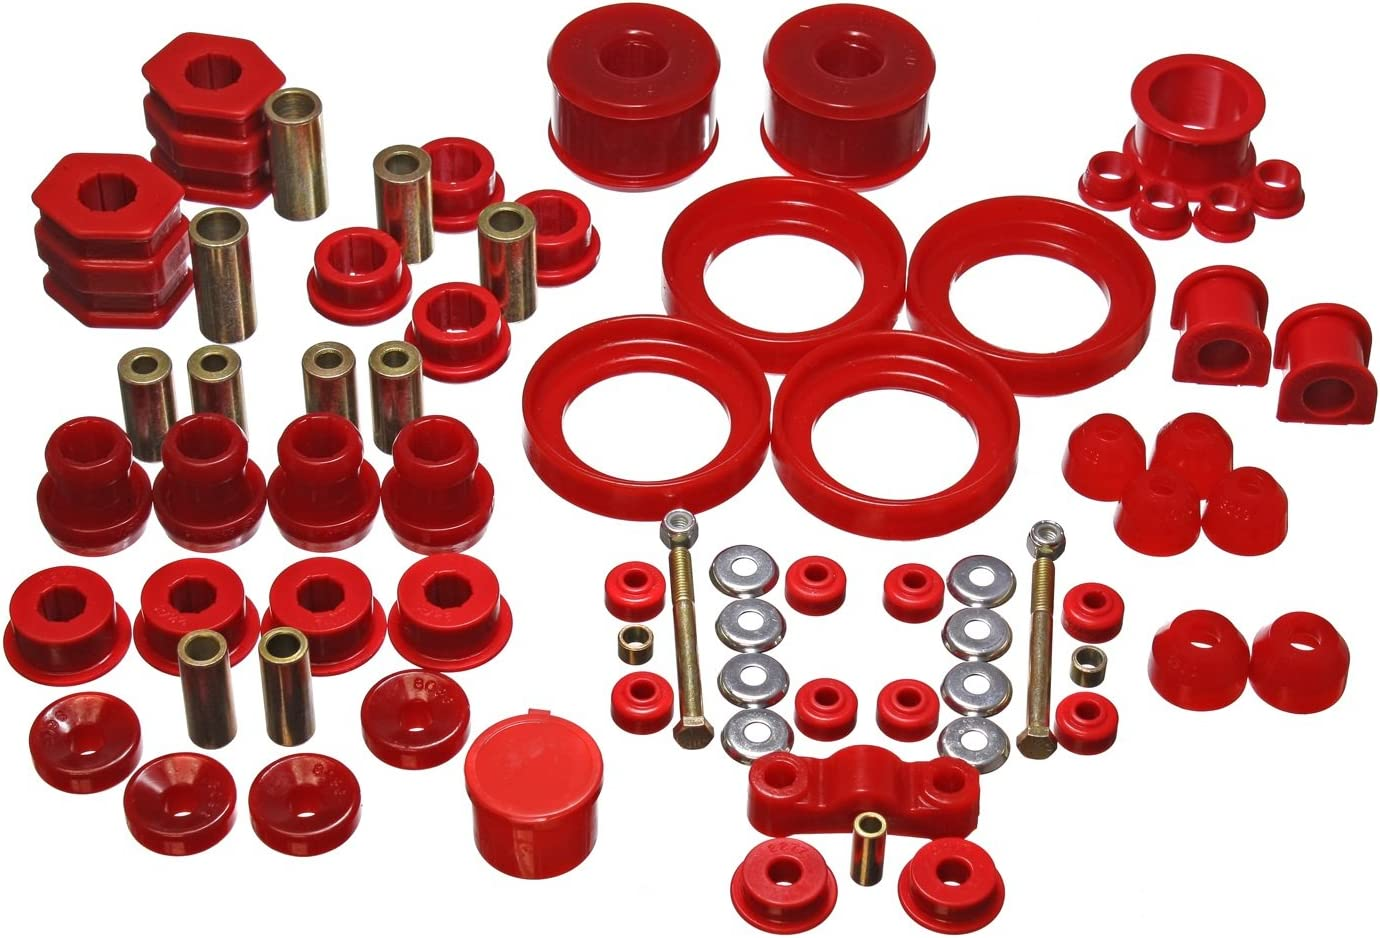 Energy Suspension 4.4120R Energy Suspension Body Mount Set Red Fits:FORD 2005